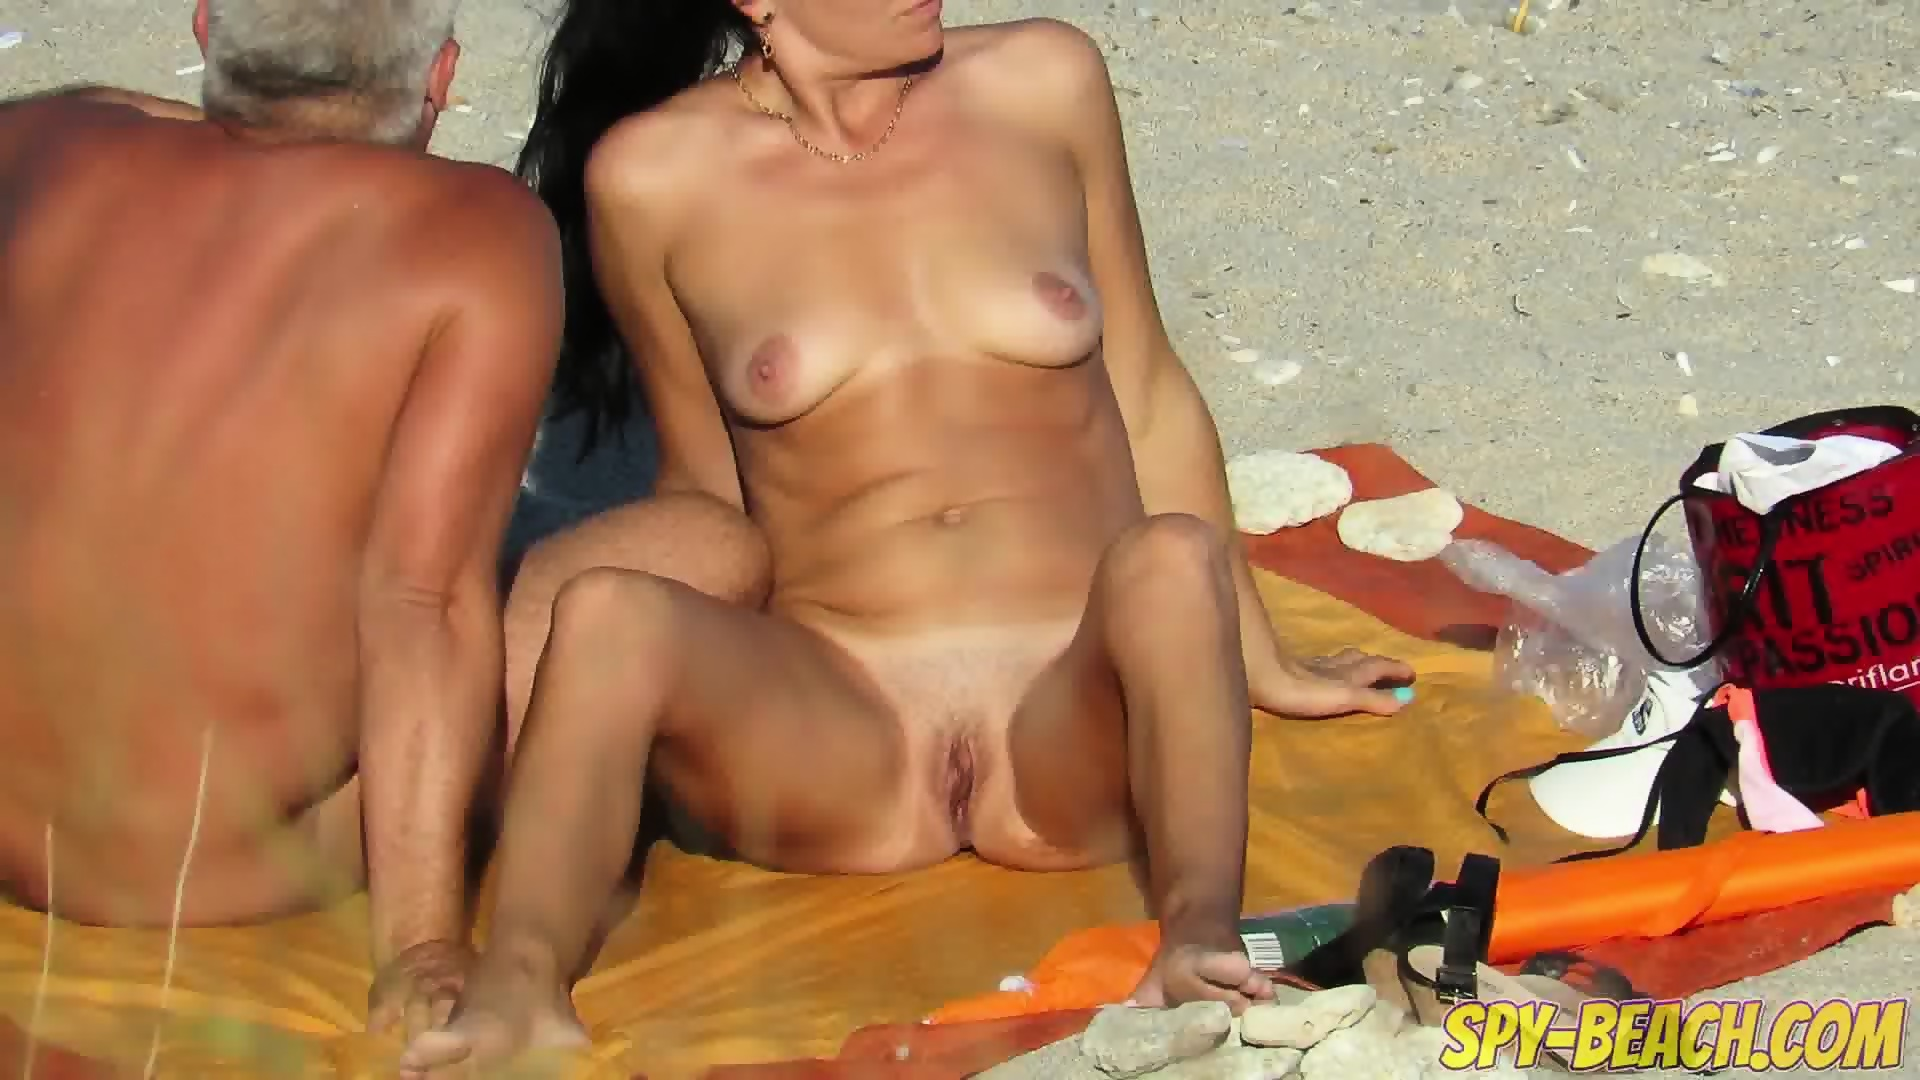 nude-beach-up-close-pussy-amateur-milfs-having-sex